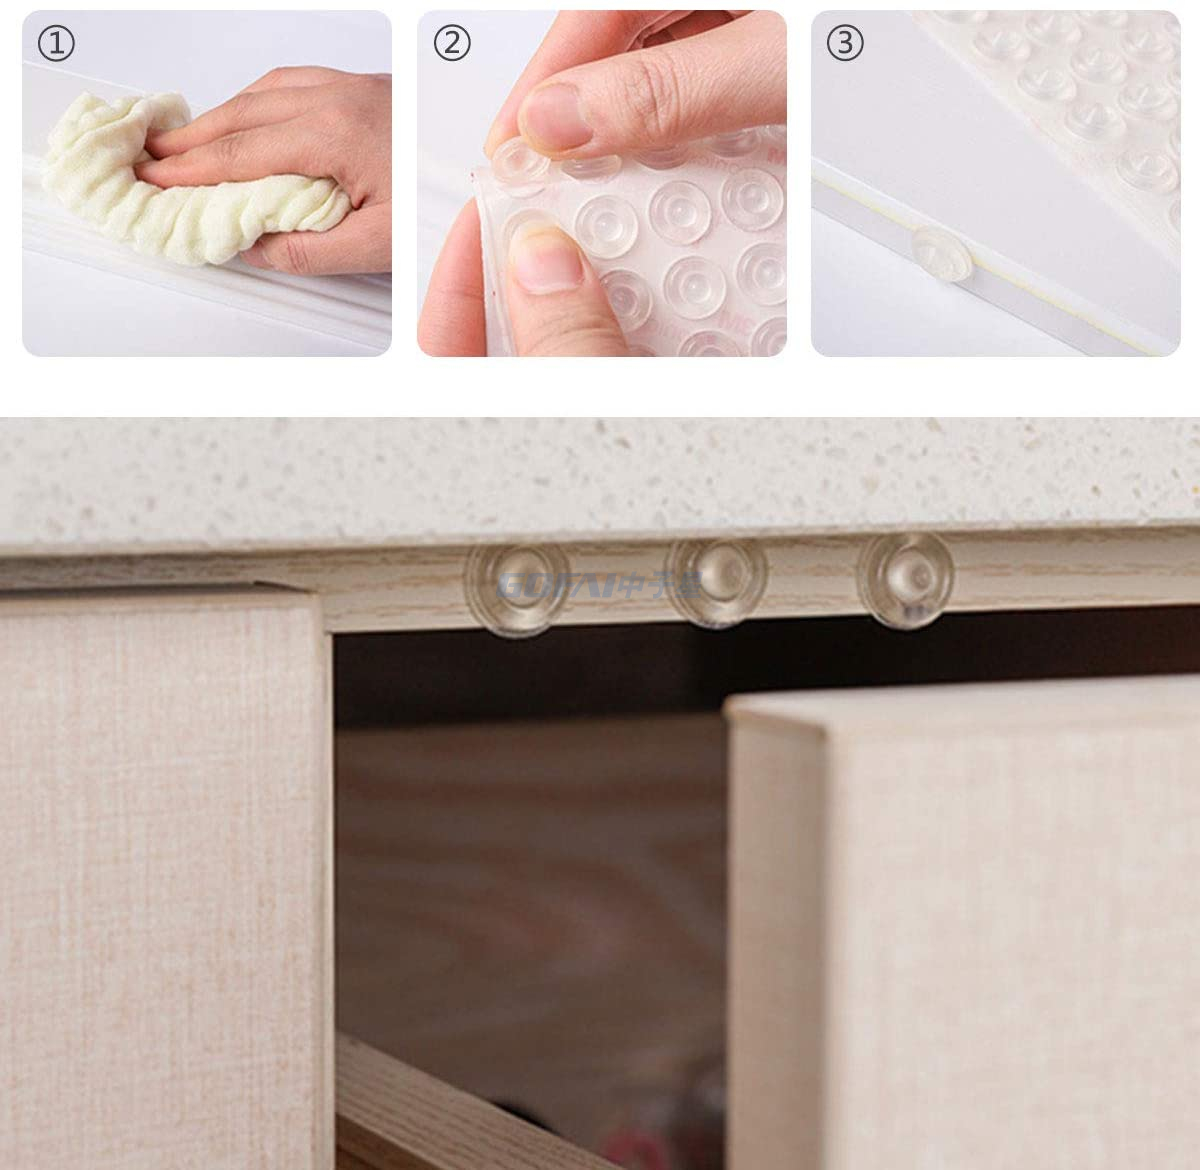 Special Shape Clear Sound Insulation Cabinet Door Self-Adhesive Bumper Foot Pad